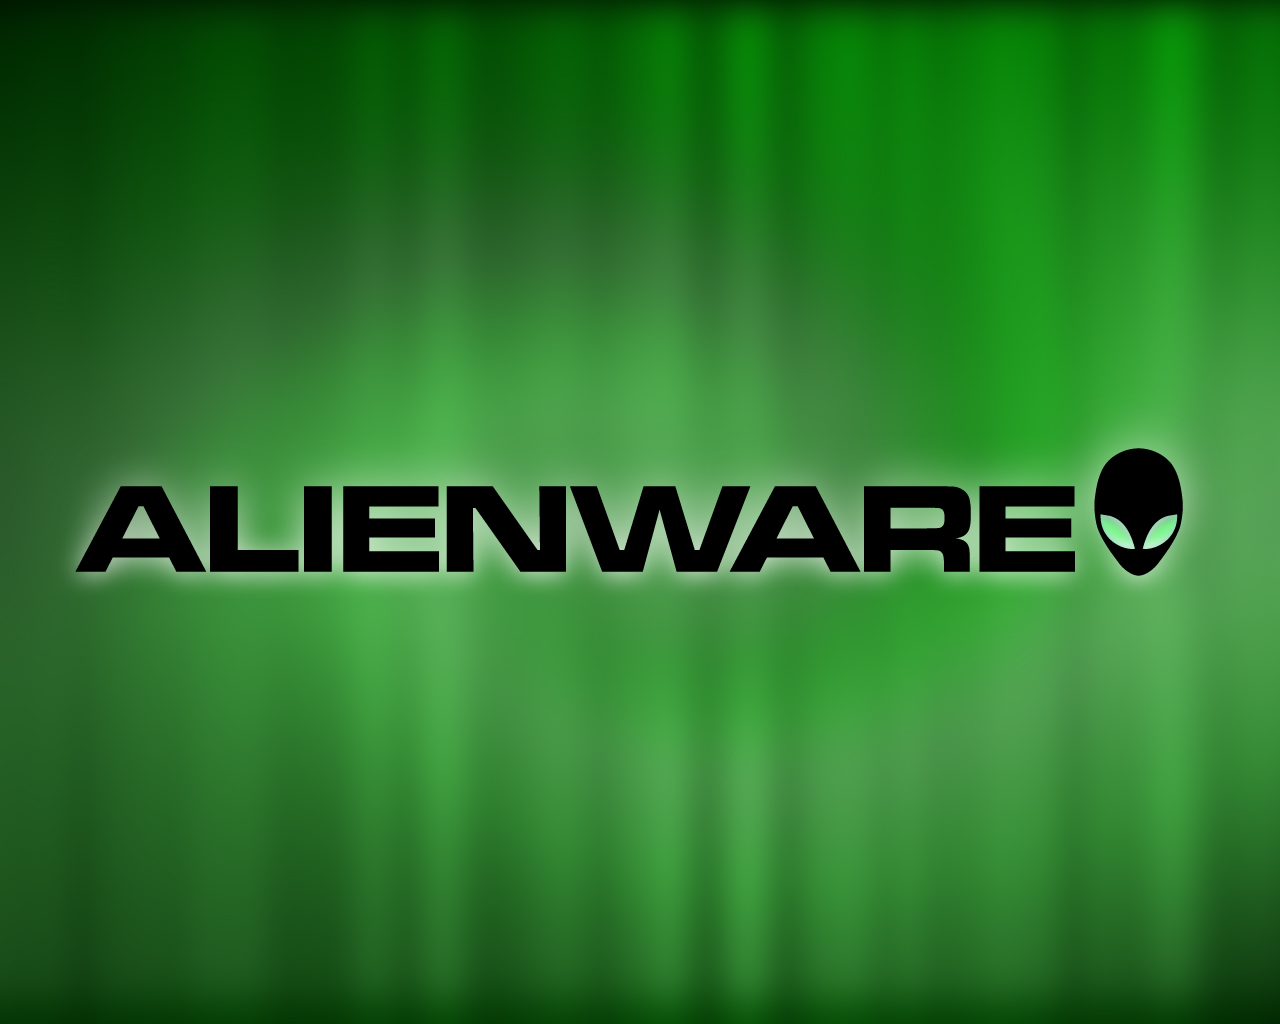 Alienware green wallpapers Alienware green stock photos 1280x1024